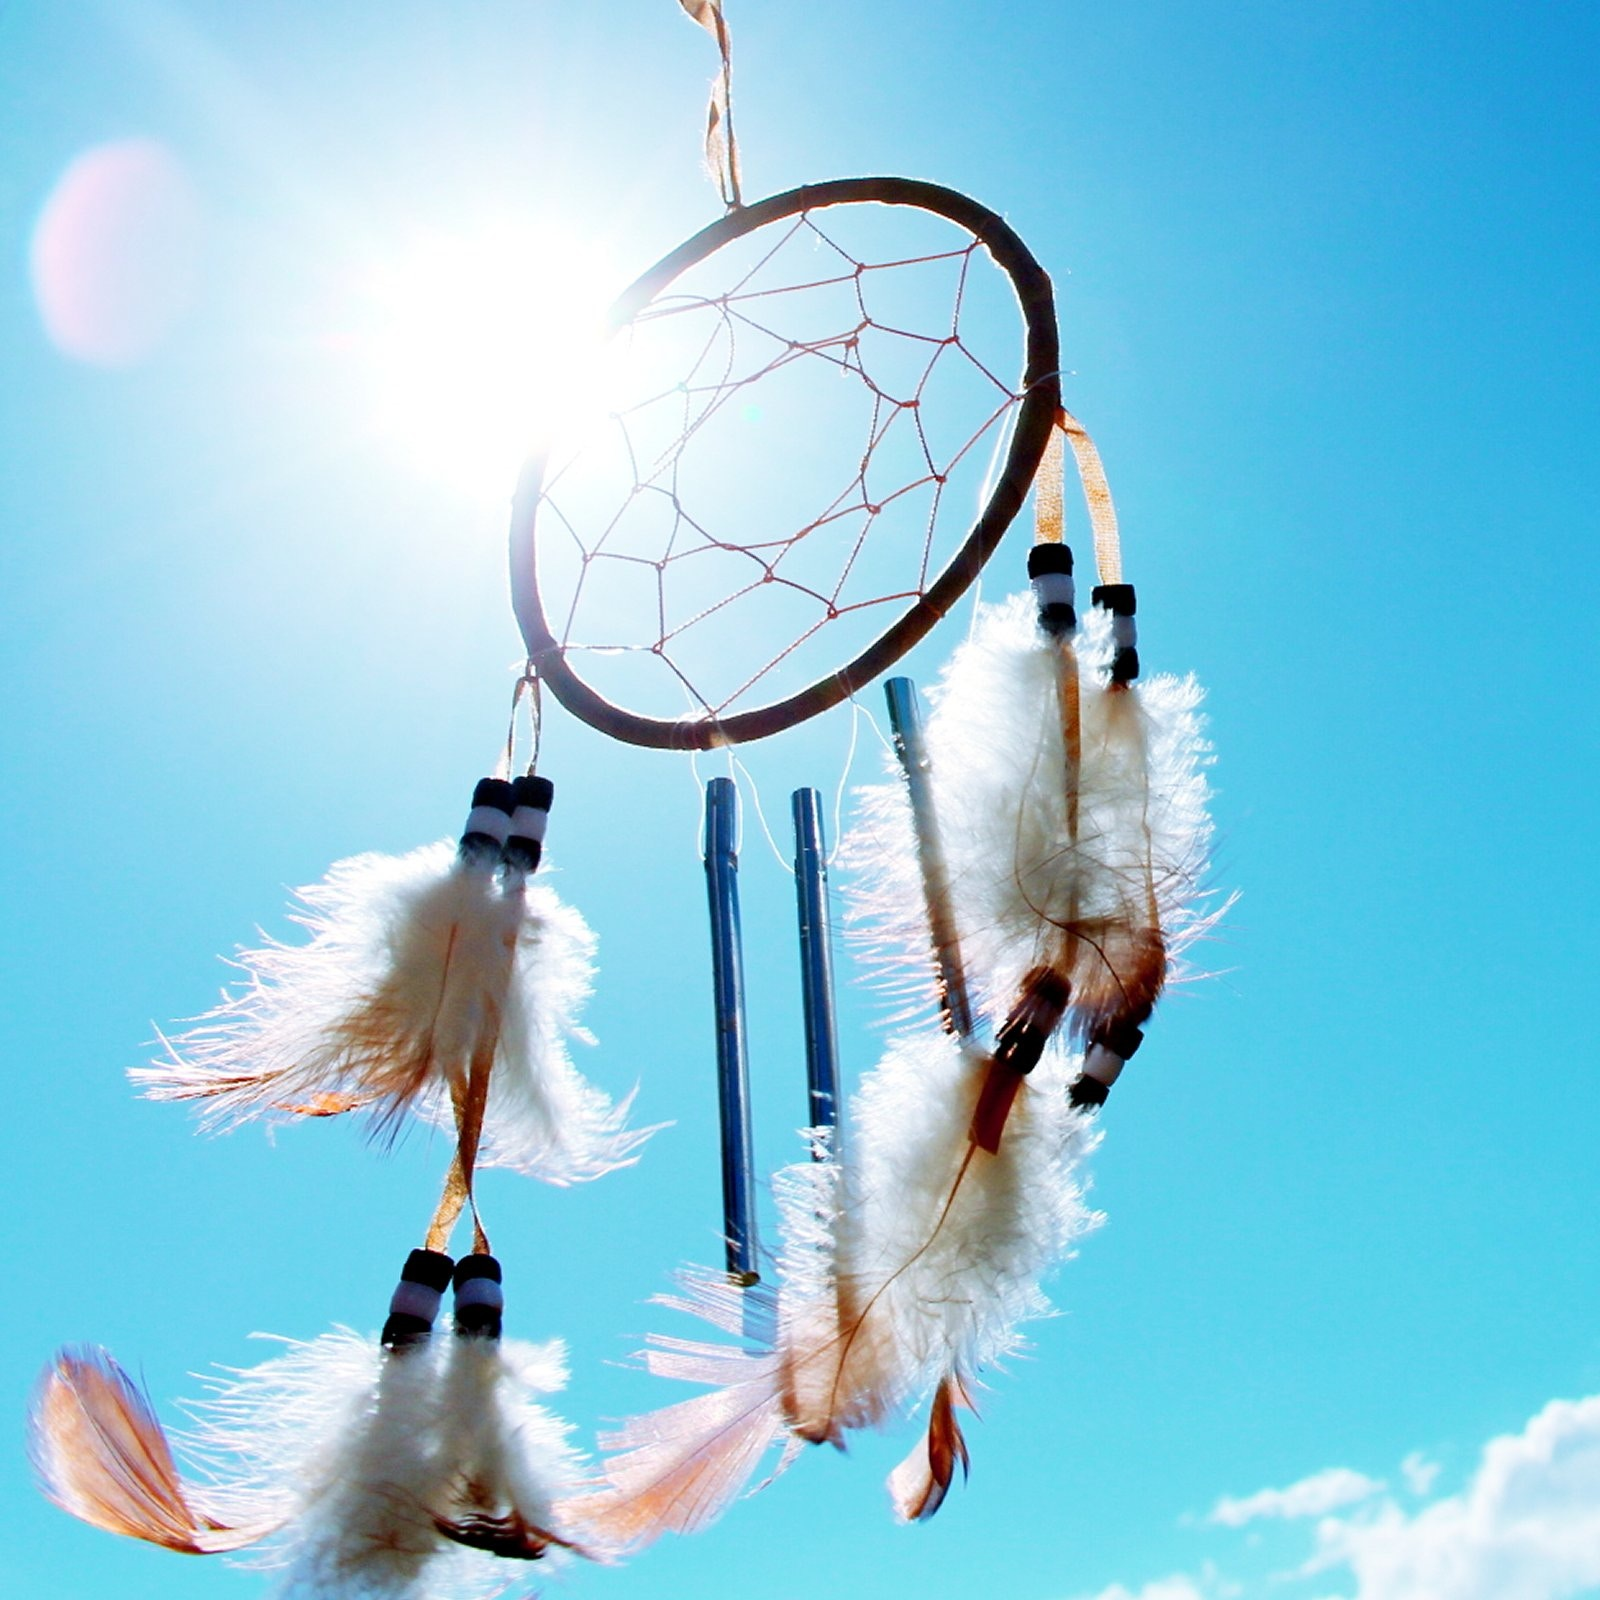 StockSnap_dream catcher.jpg